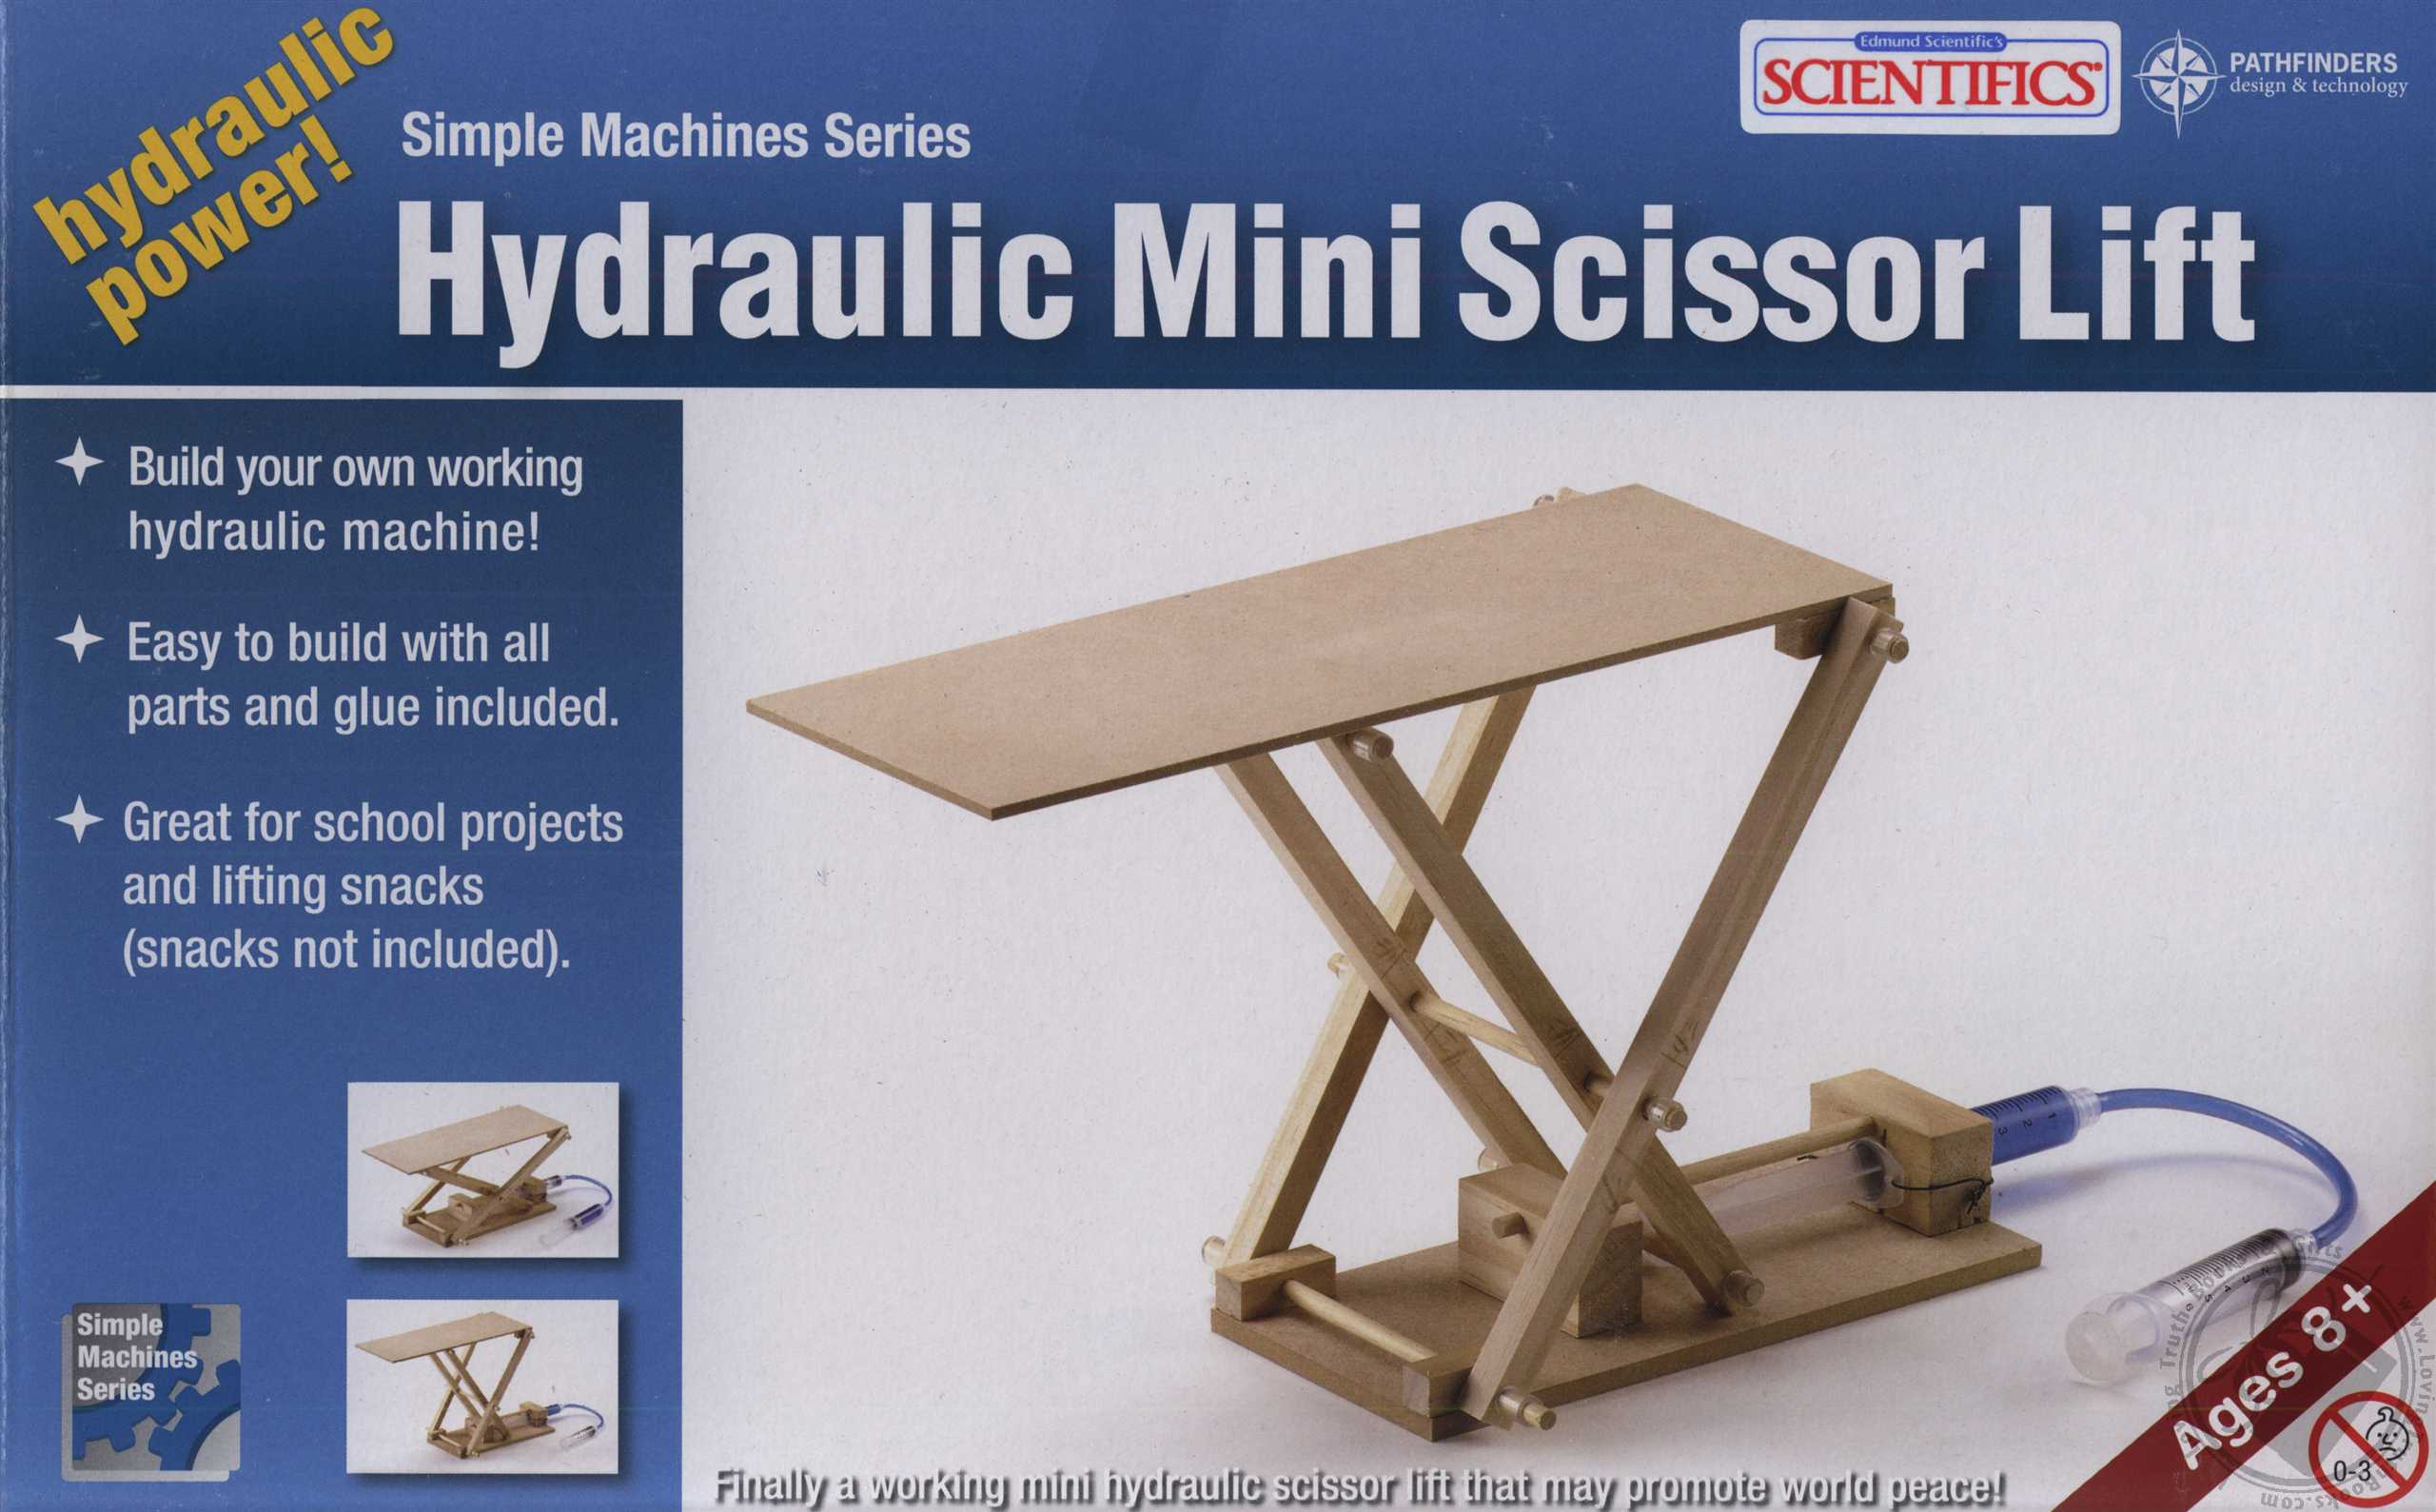 Simple Machines Series: Wooden Hydraulic Mini Scissor Lift (For Ages